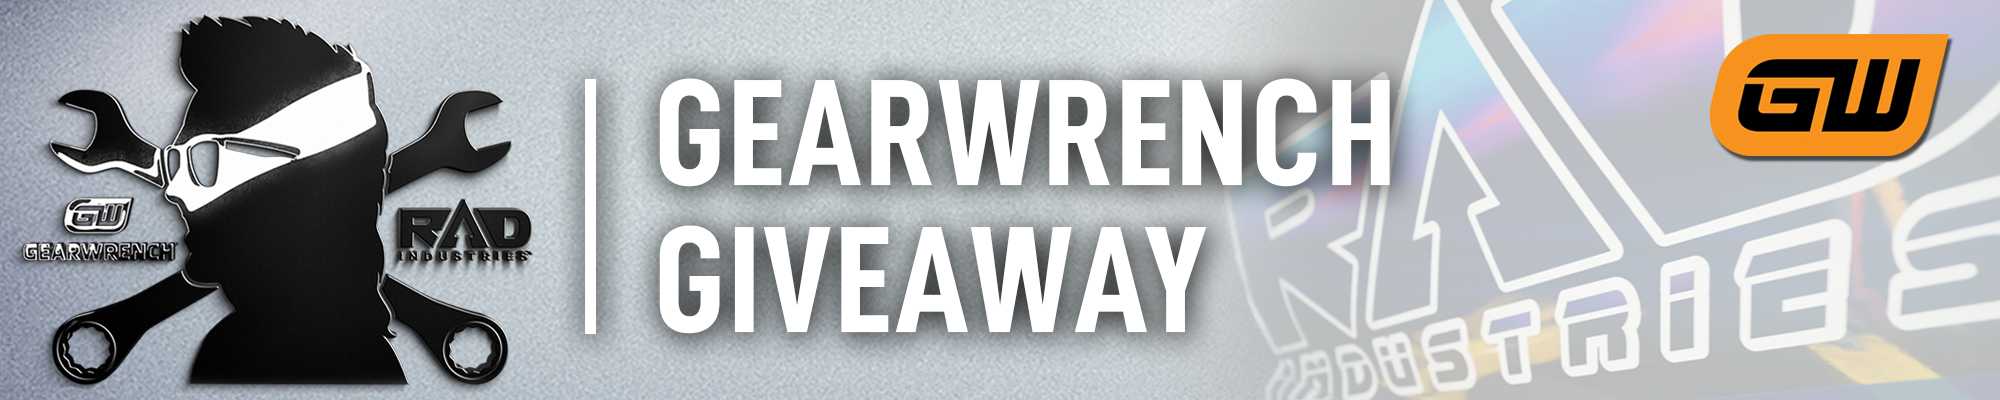 #GEARWRENCHisRAD GIVEAWAY